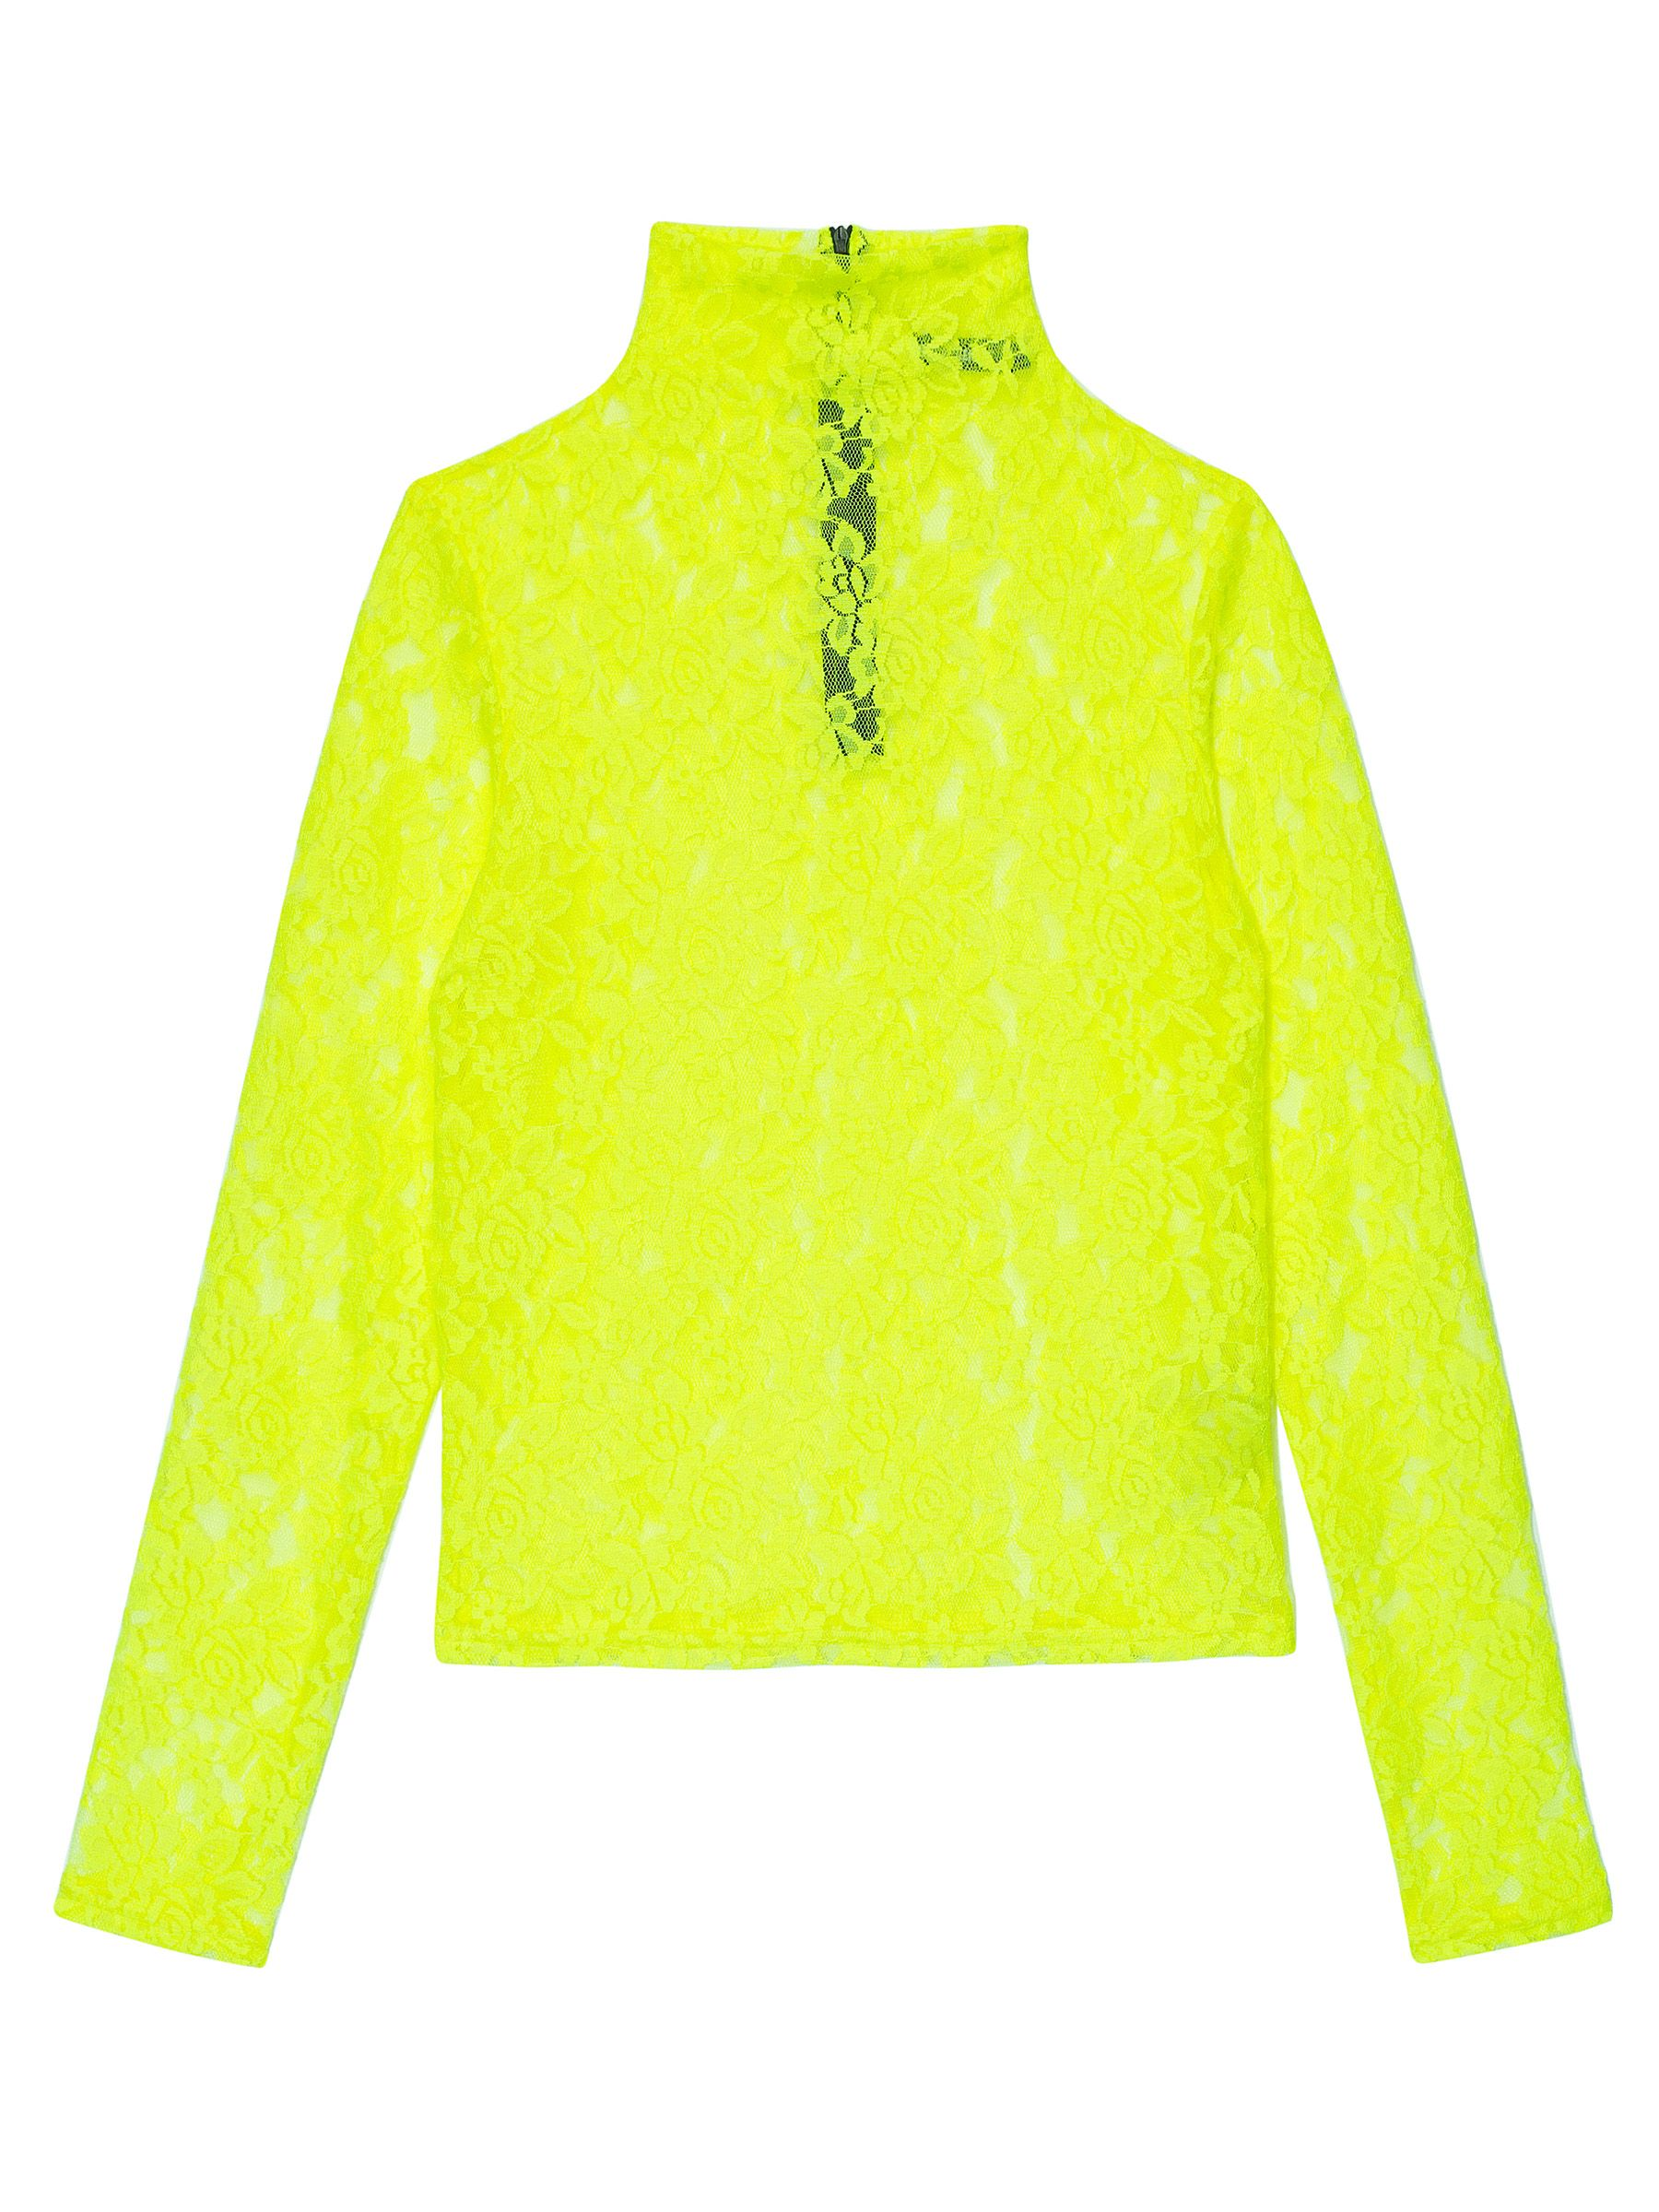 LH NEON LACE TURTLENECK